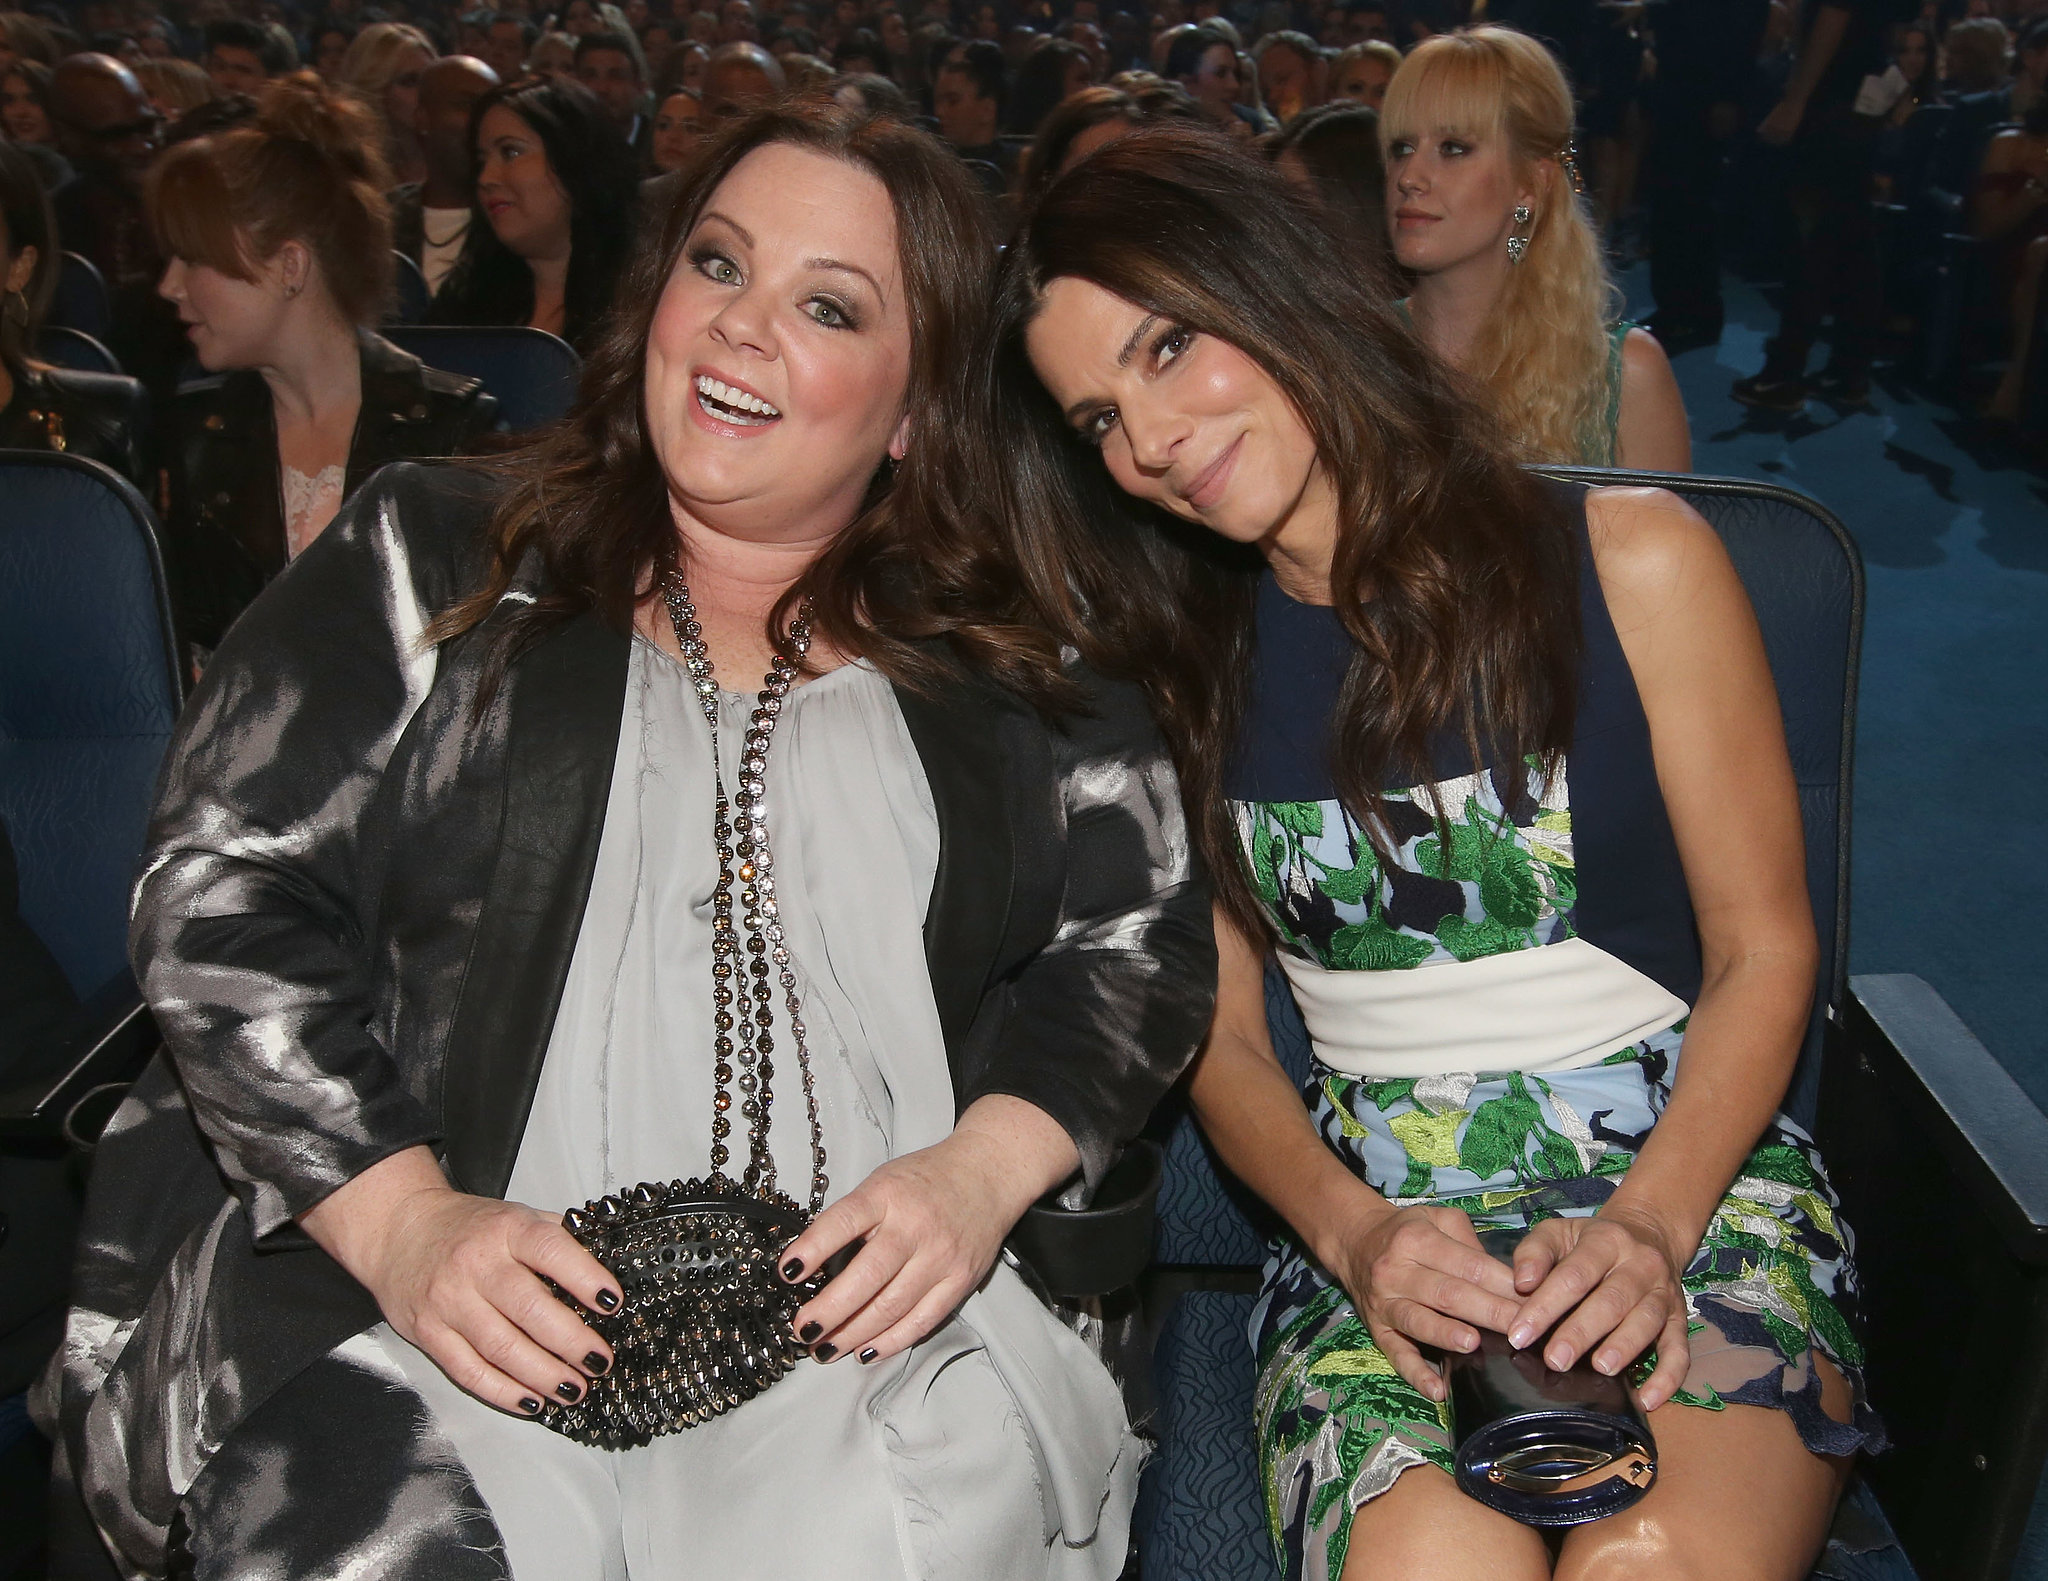 Pals Sandra Bullock and Melissa McCarthy got seats next to each other inside the People's Choice Awards.